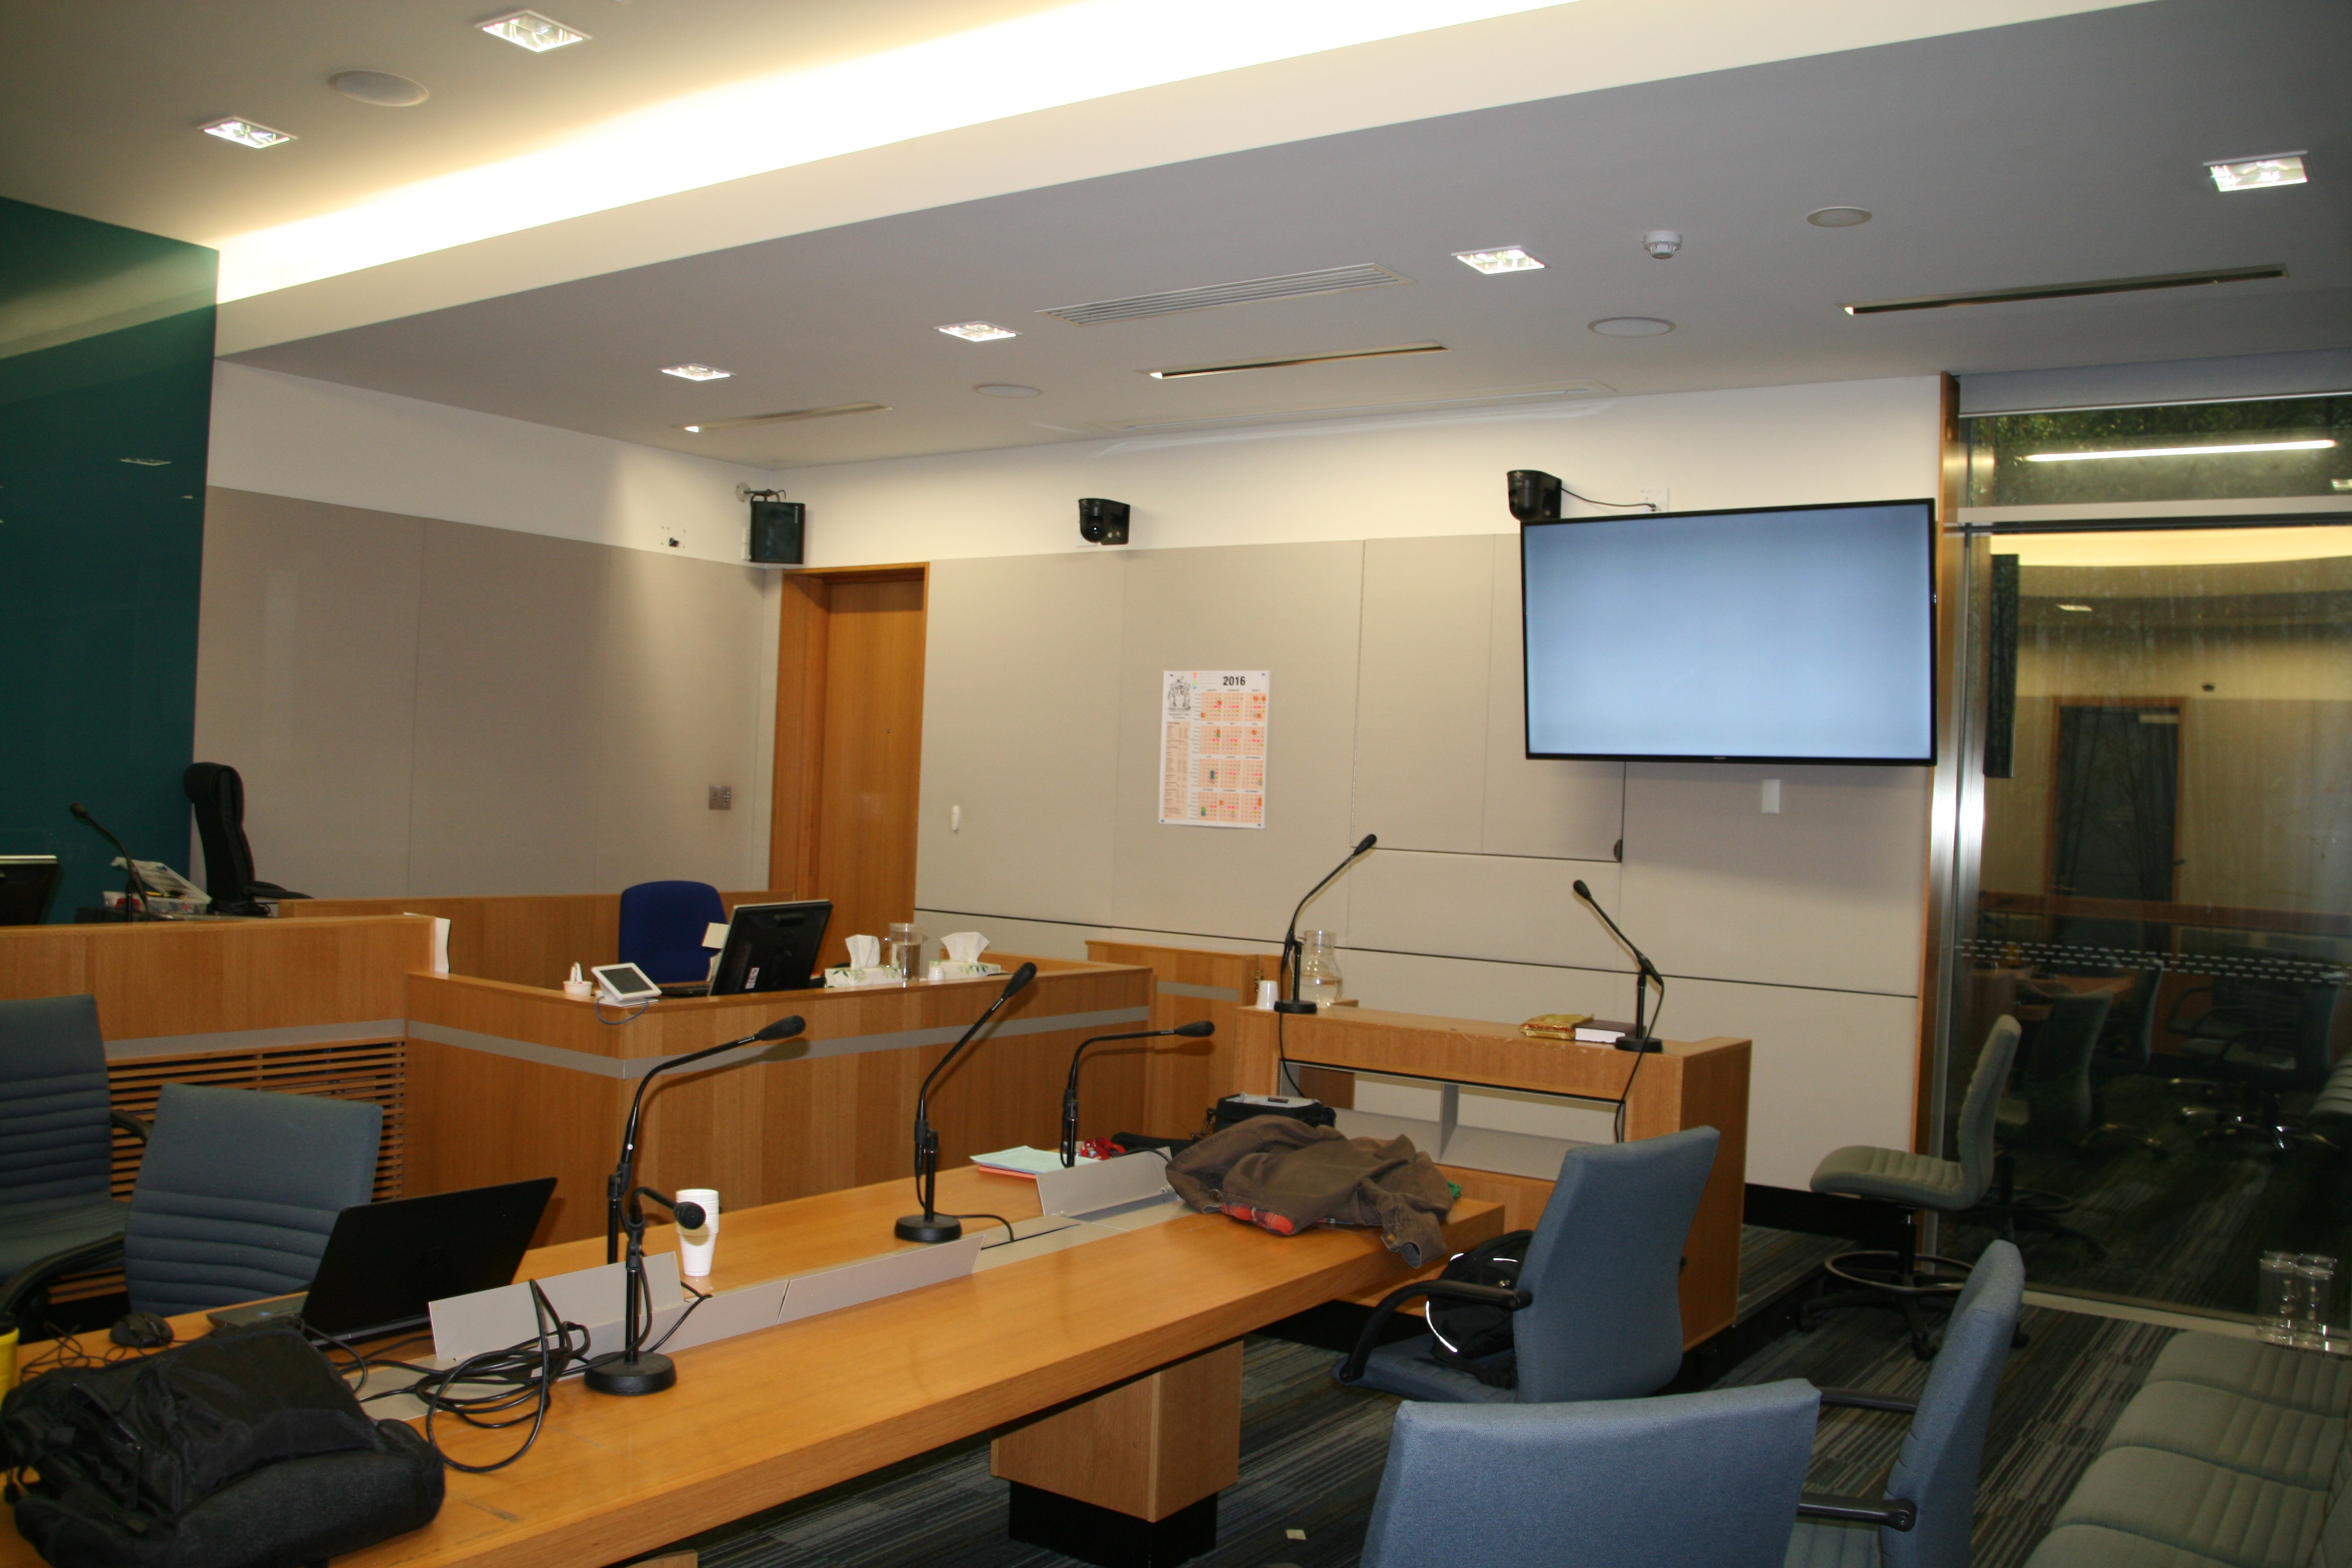 Courtroom in the Moorabbin Justice Centre